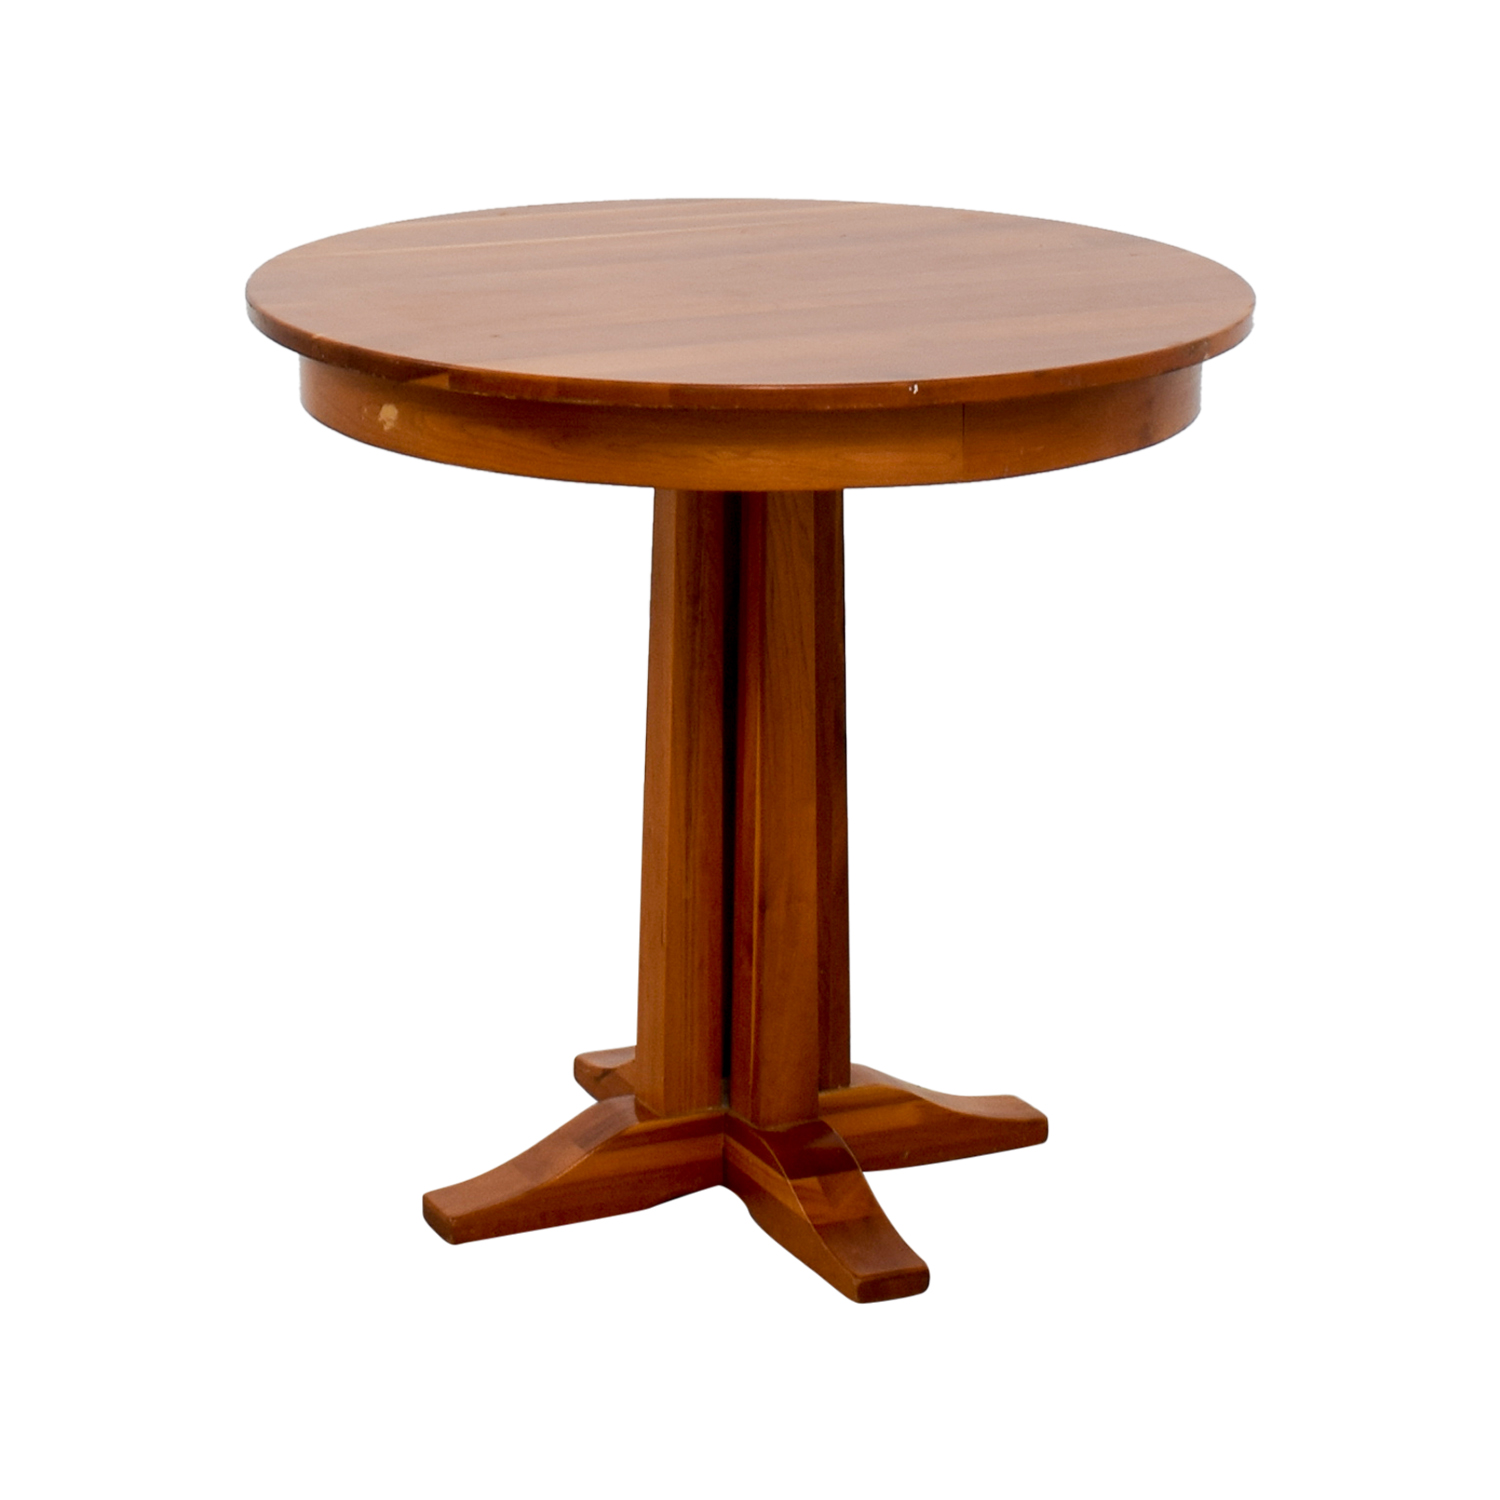 Round Wood Dining Table: Round Wood Dining Table / Tables